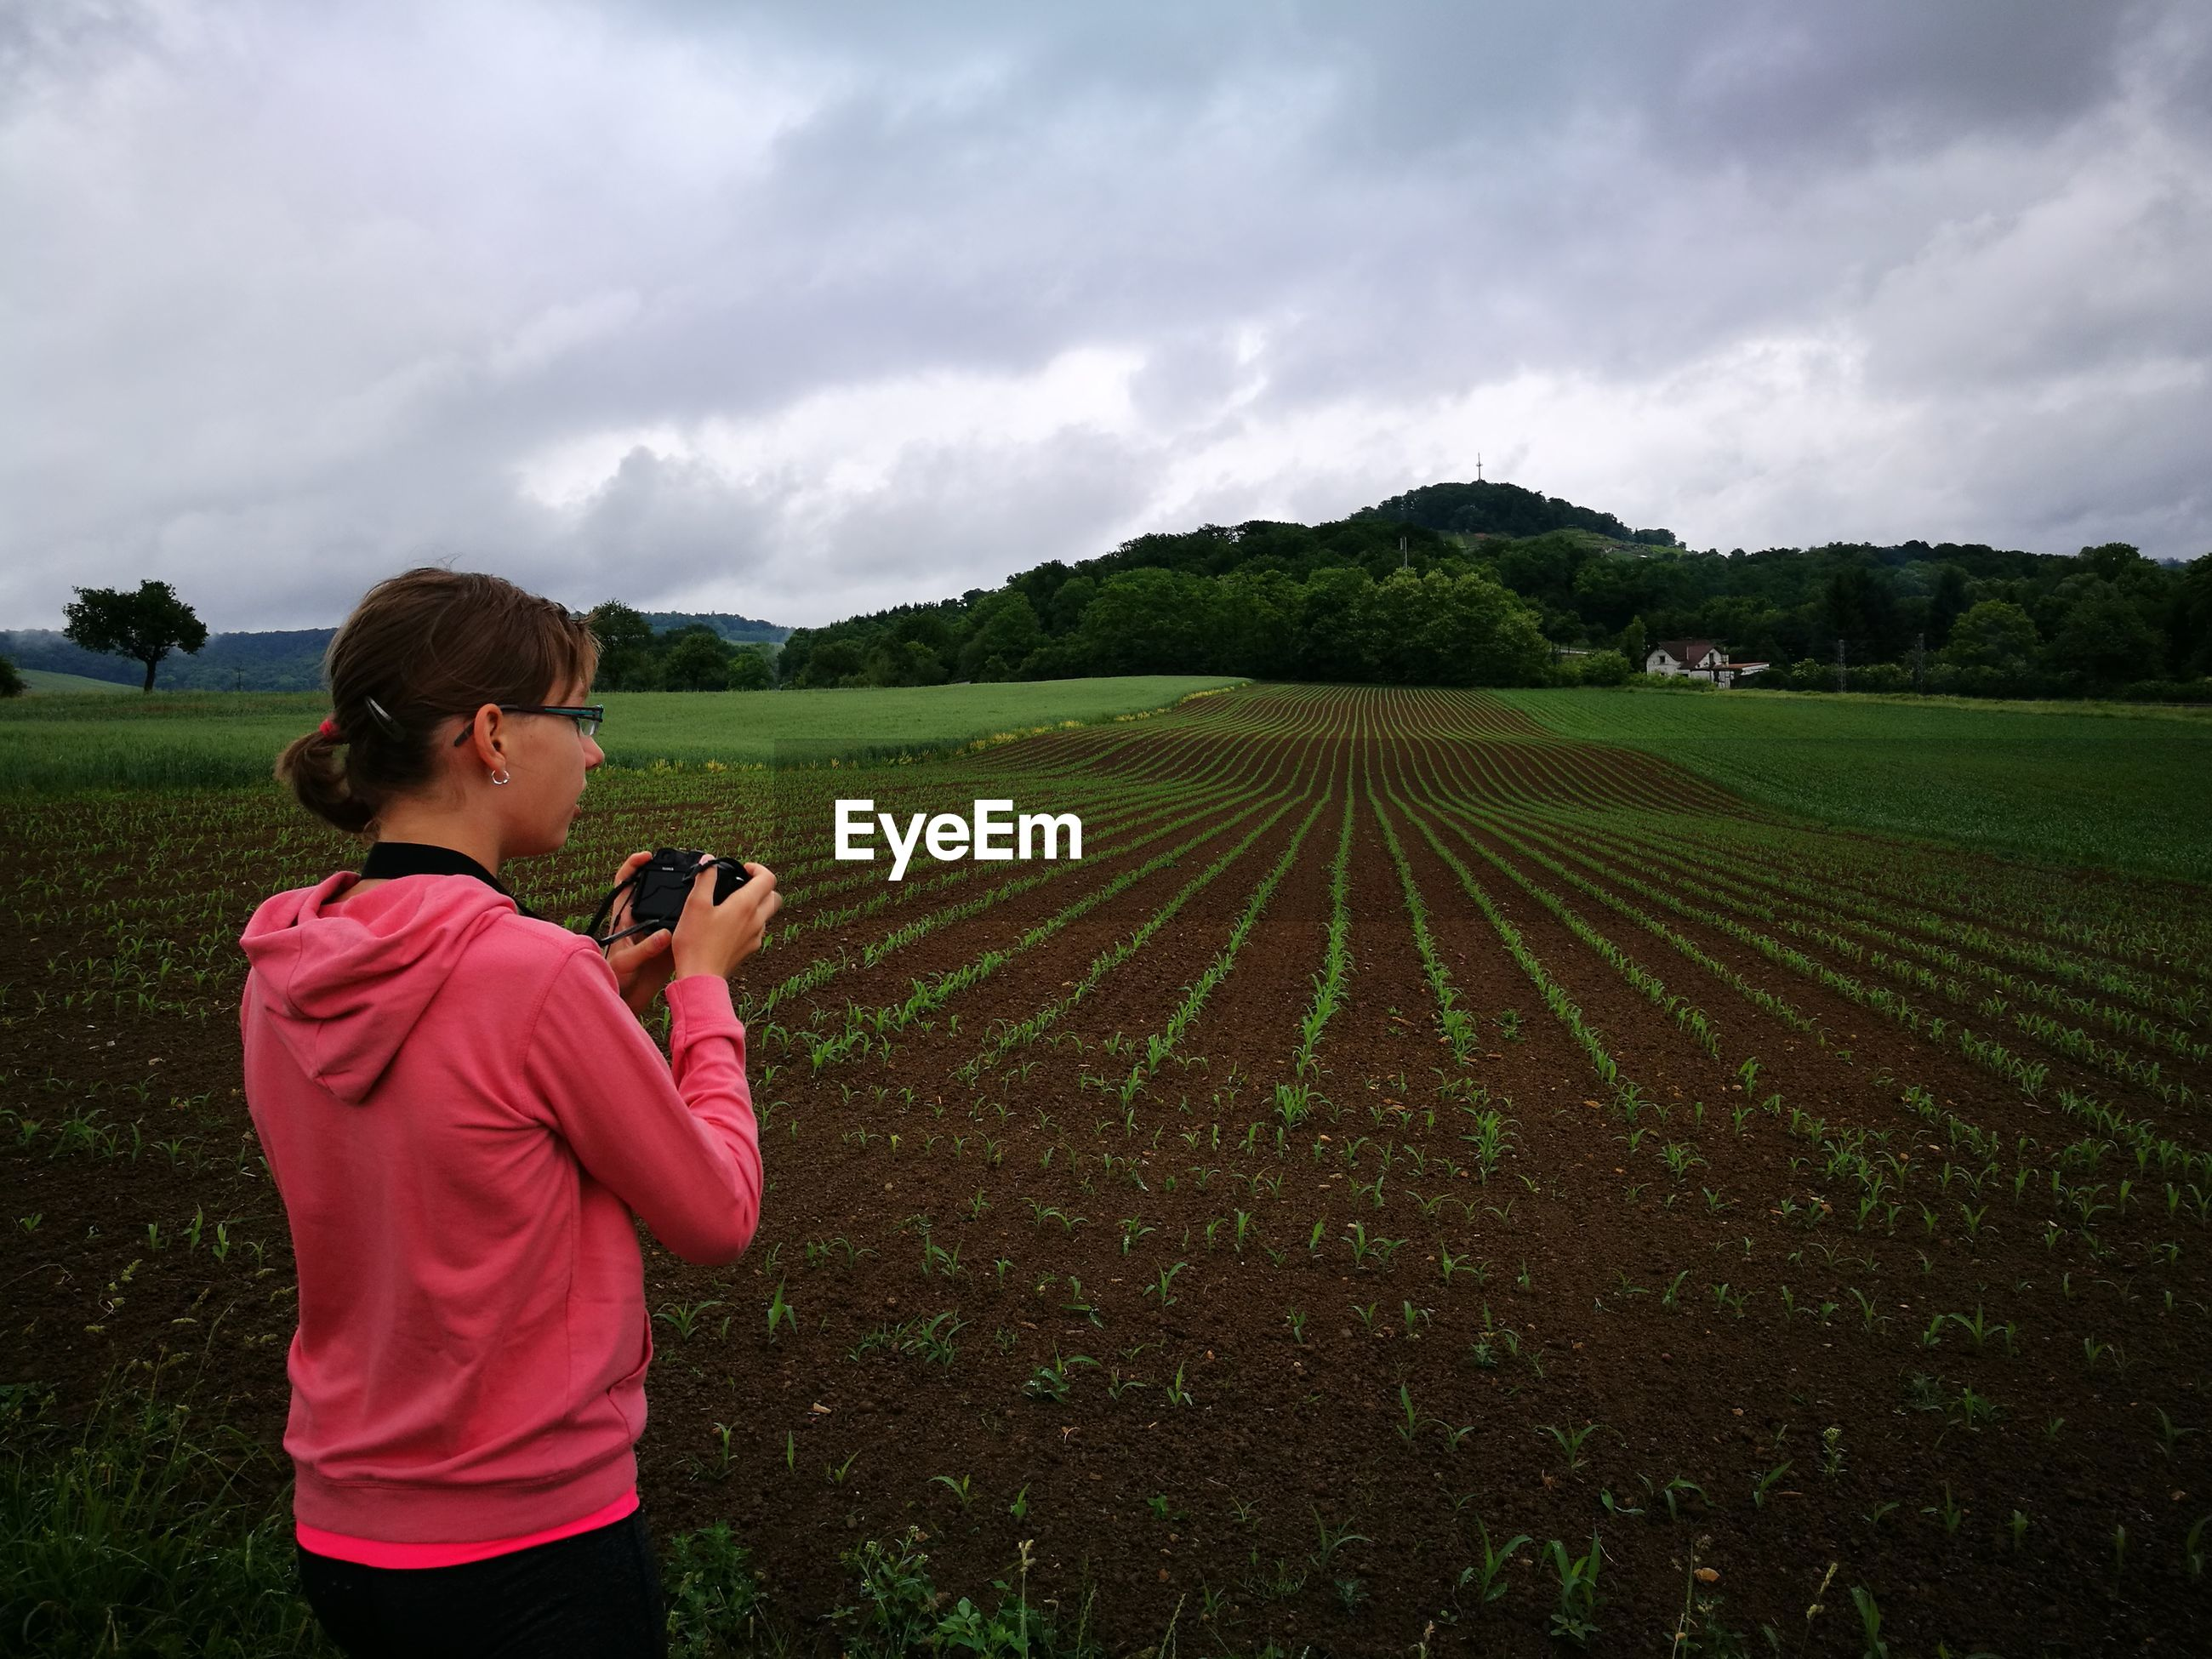 Woman photographing agricultural field against cloudy sky